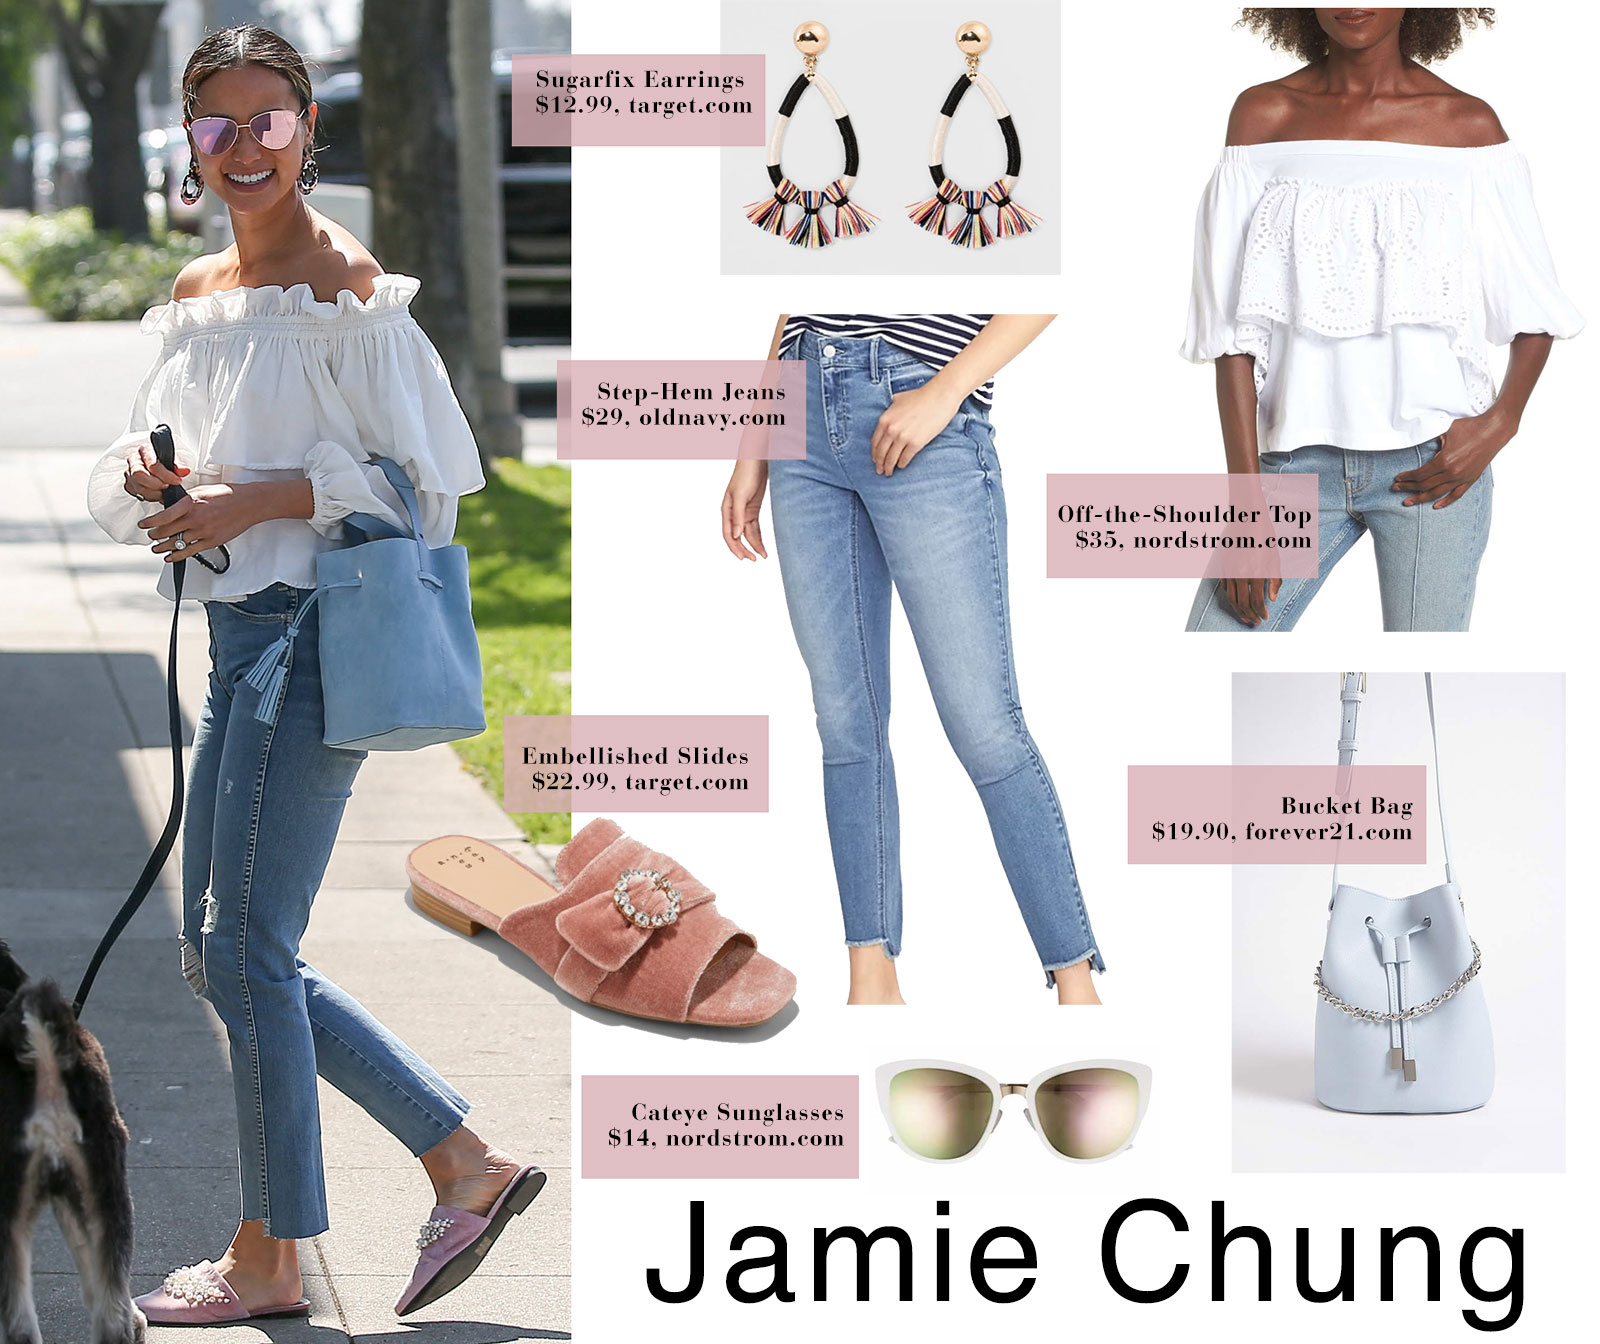 c28abd4cb446d Jamie Chung s off the shoulder top and pink mule slides.